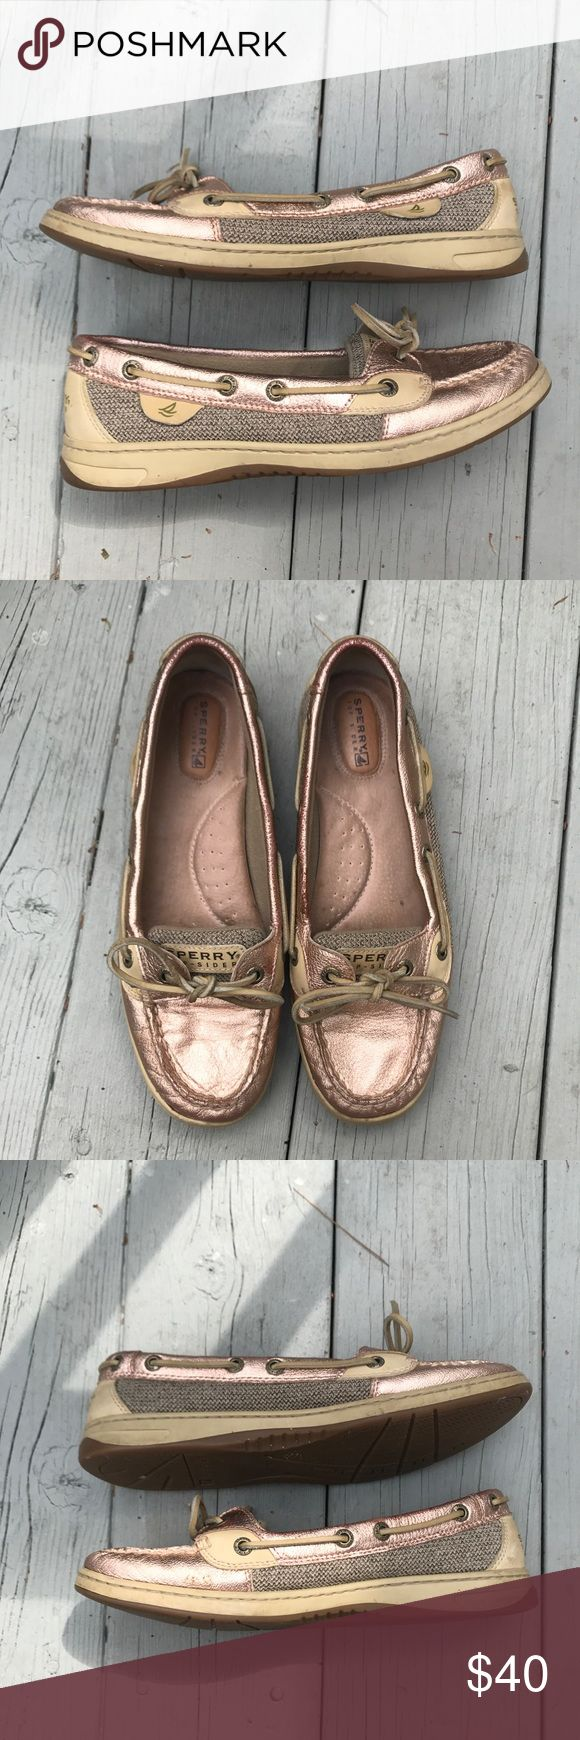 Rose Gold Sperry Angelfish Boat Shoes Sz 8 Women's rose gold Sperry Angelfish boat shoes in size 8. Great pre-owned condition. Show light wear. No odor. Sperry Top-Sider Shoes Flats & Loafers